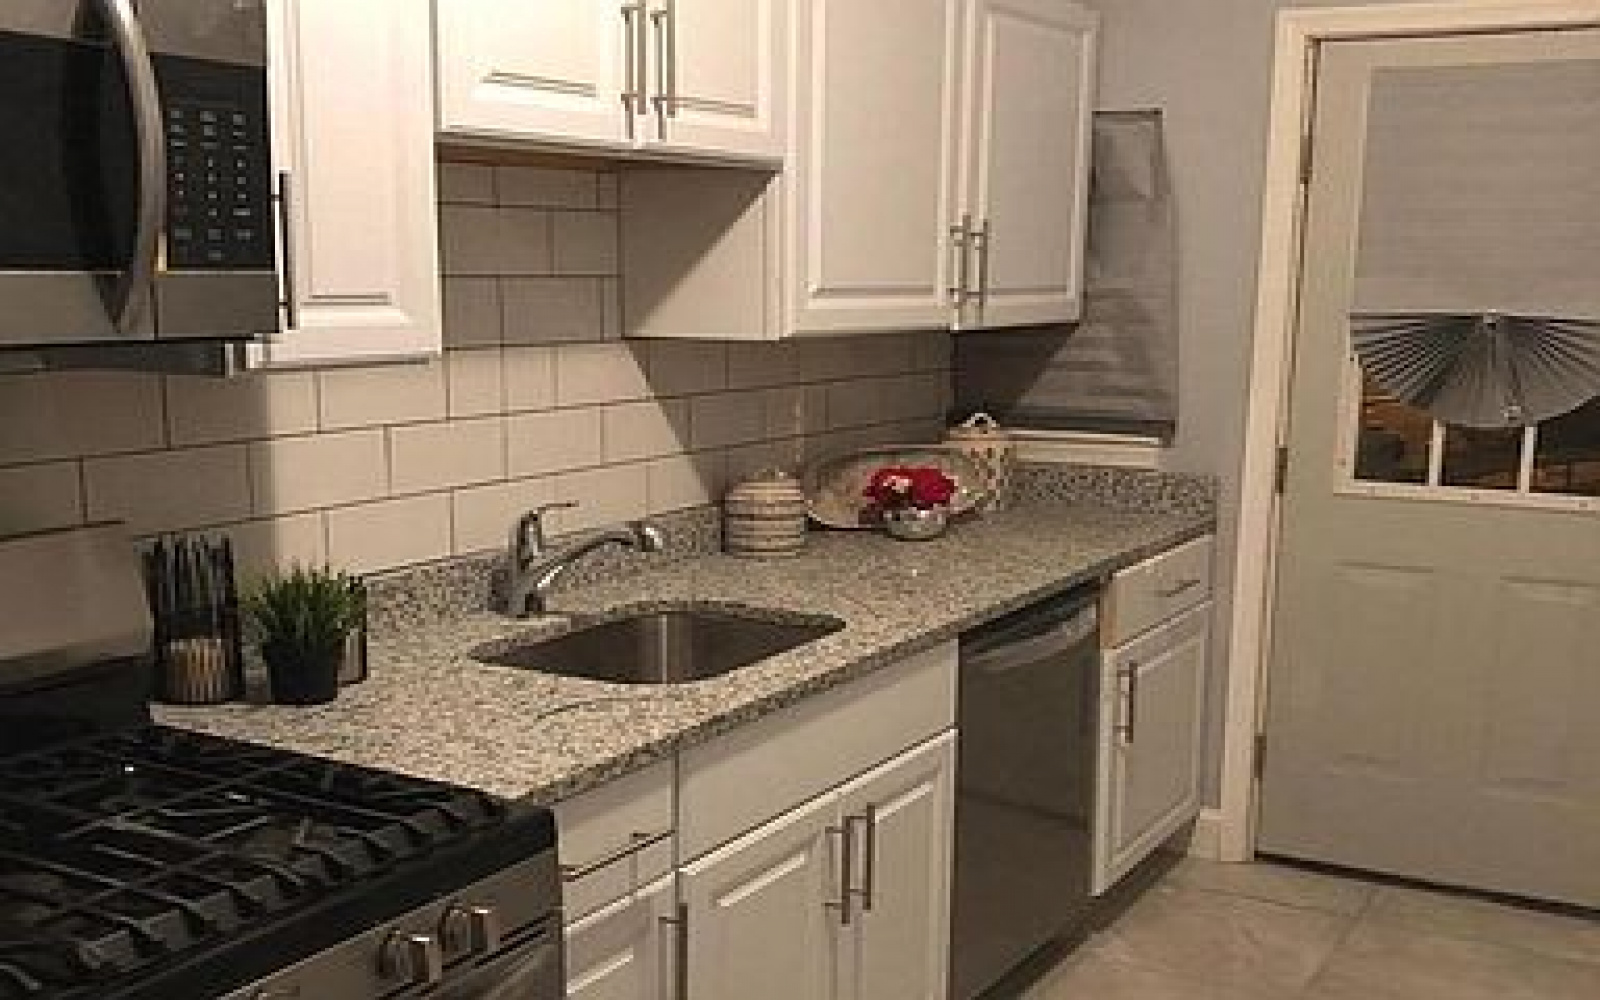 1402 18th Pl SE,Washington,District Of Columbia 20020,1 Bedroom Bedrooms,1 BathroomBathrooms,Apartment,18th,1203